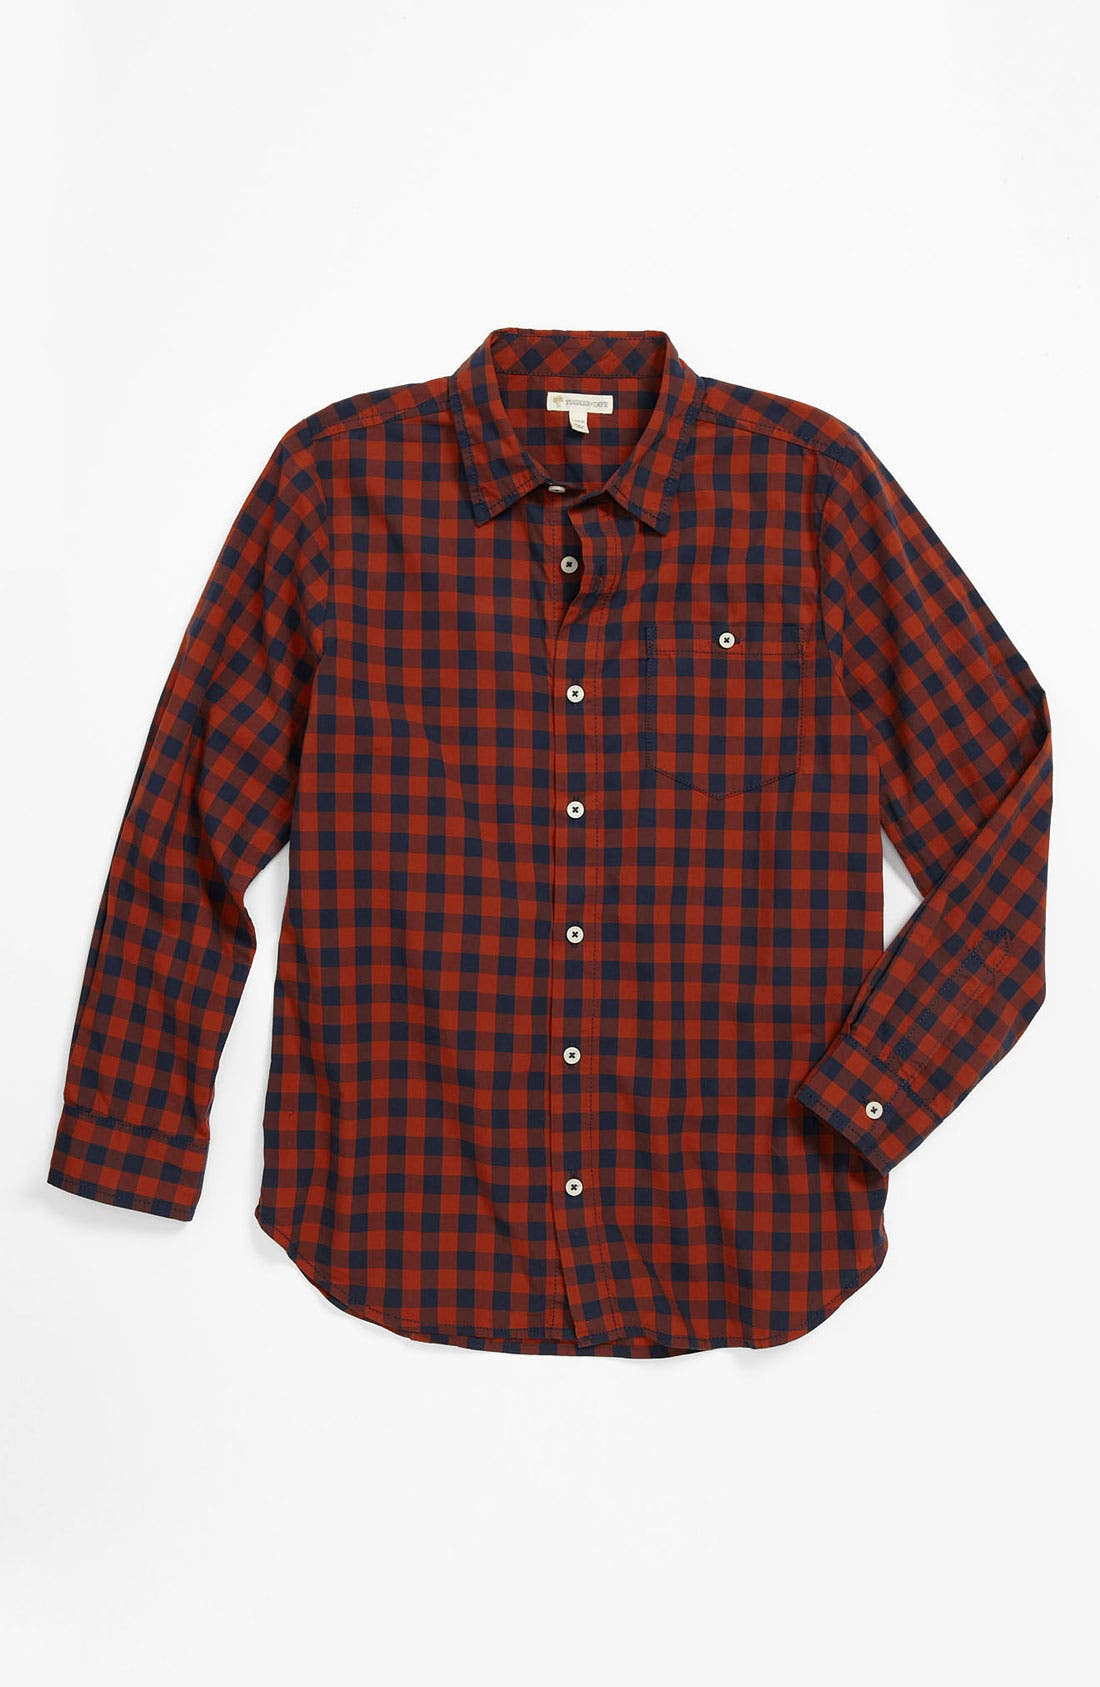 Alternate Image 1 Selected - Tucker + Tate 'Allister' Poplin Shirt (Big Boys)